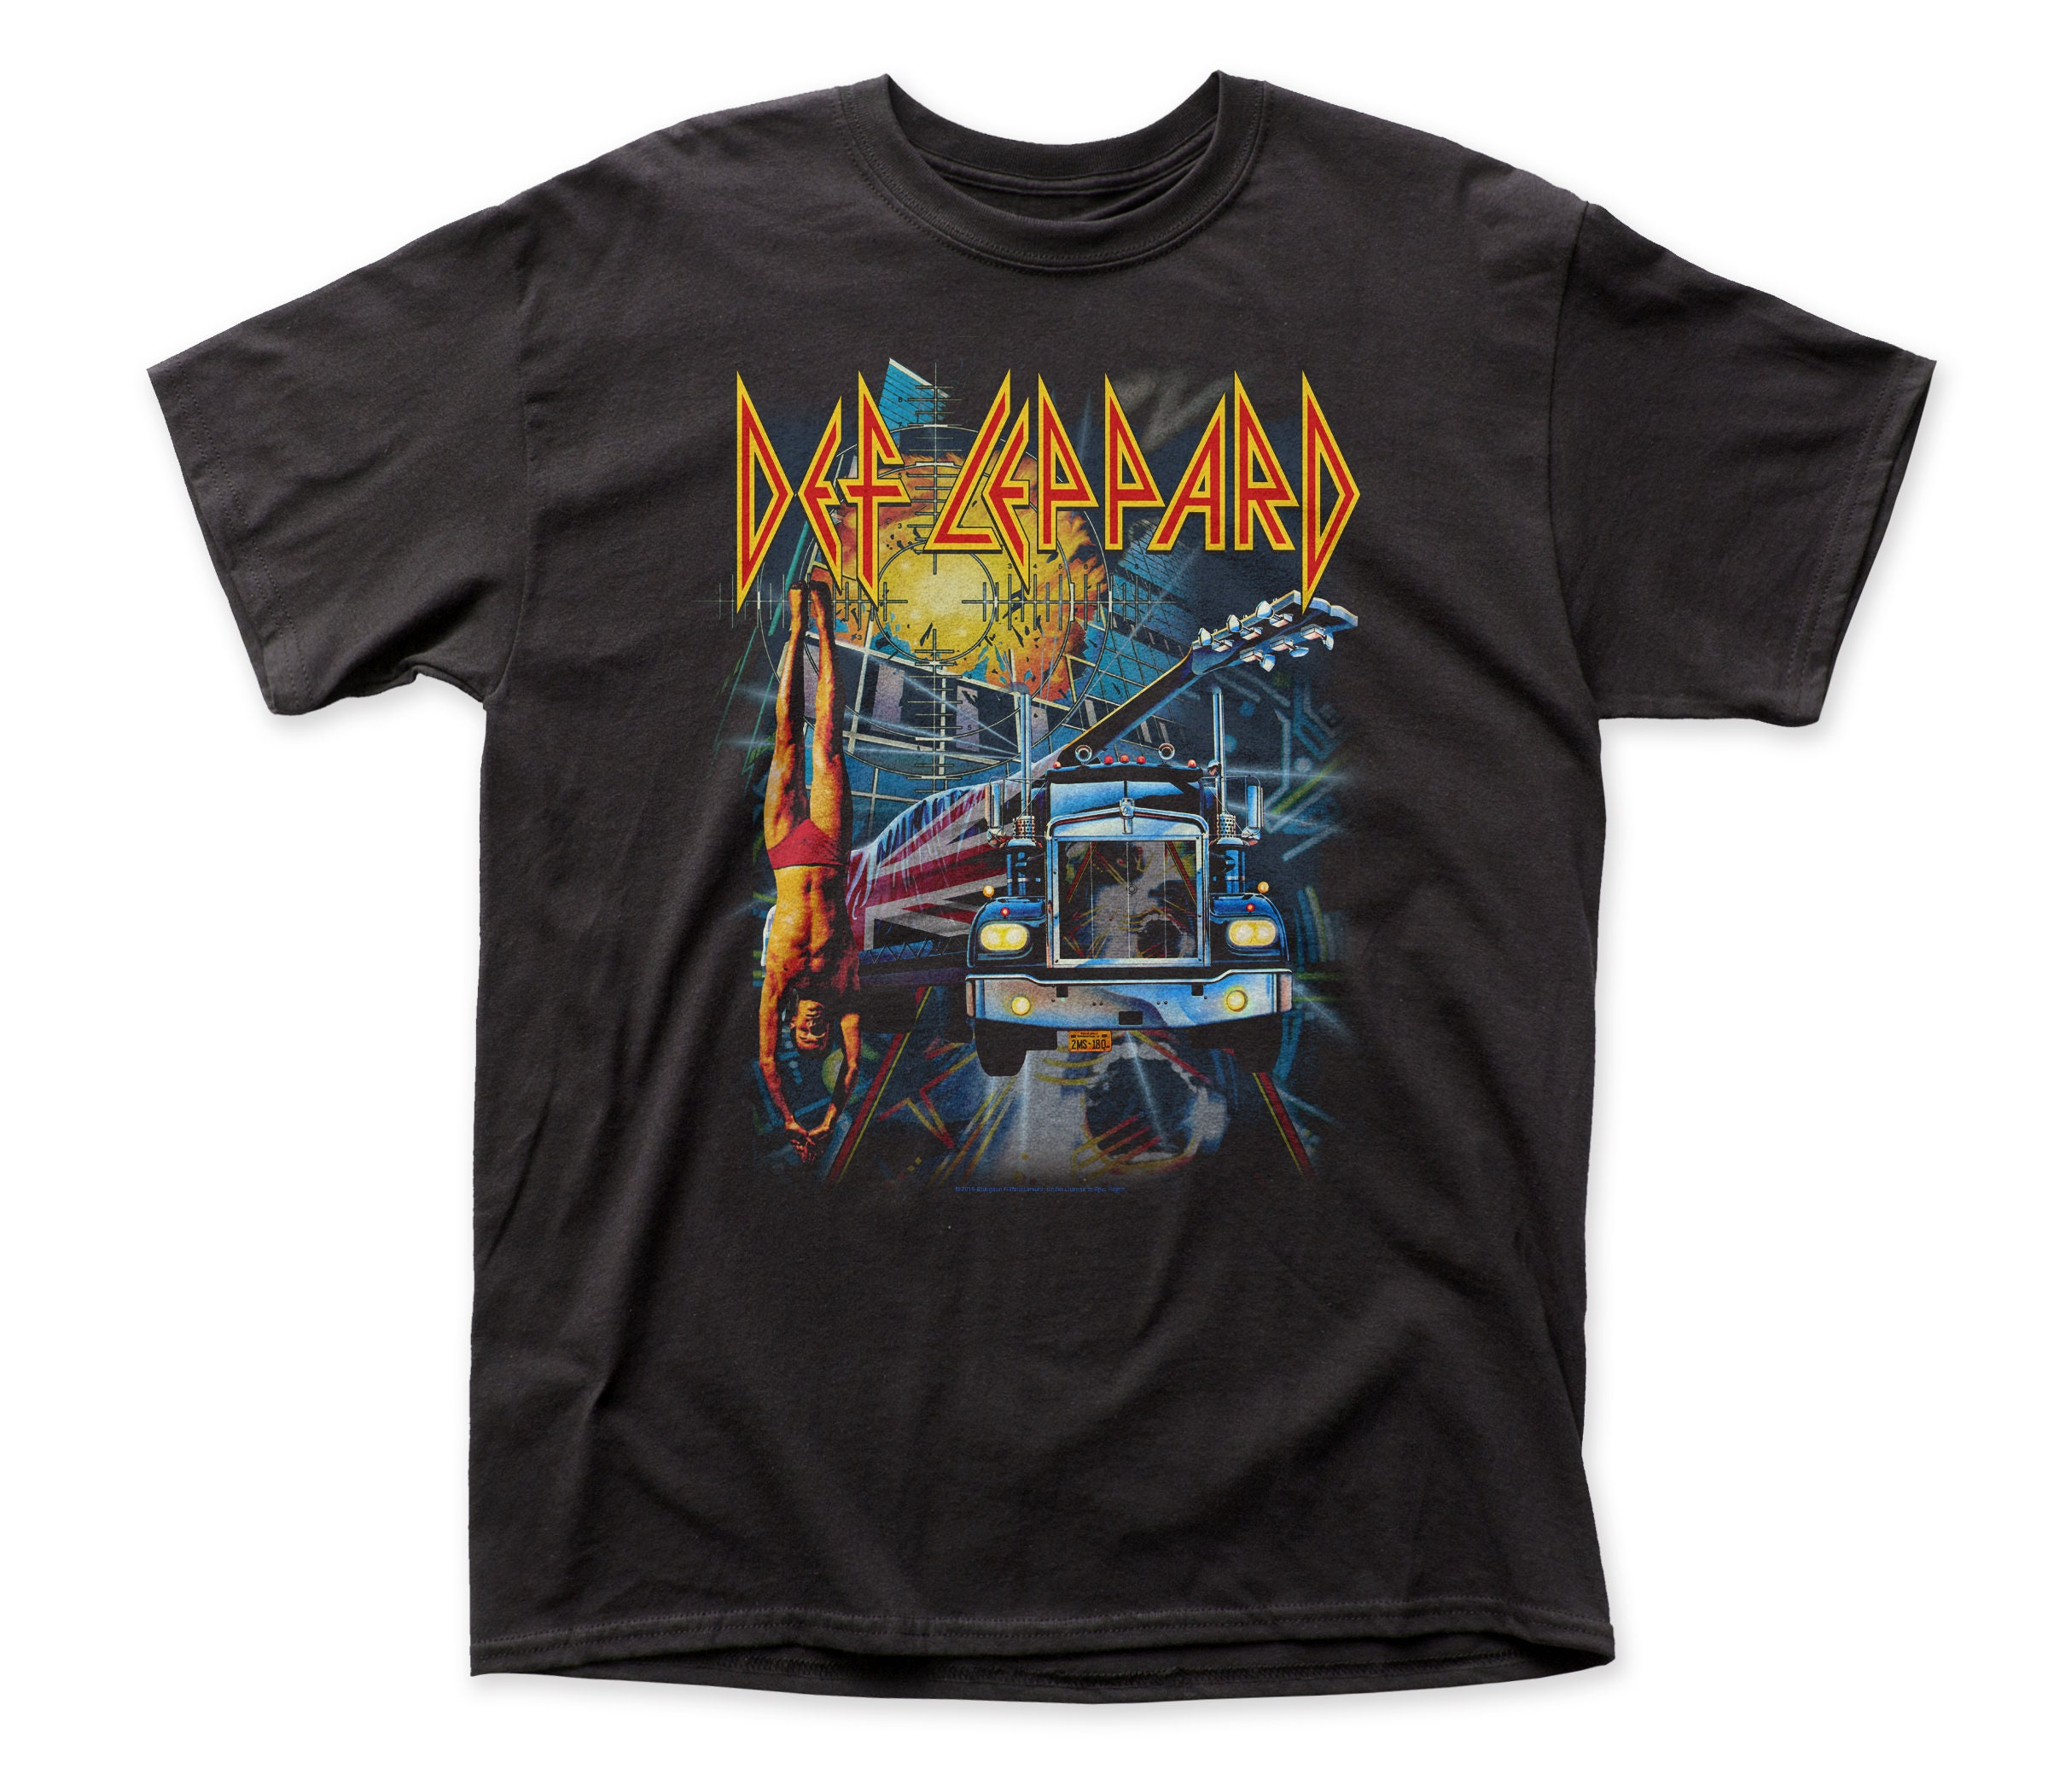 Def Leppard Boxset T-shirt for men - Small only